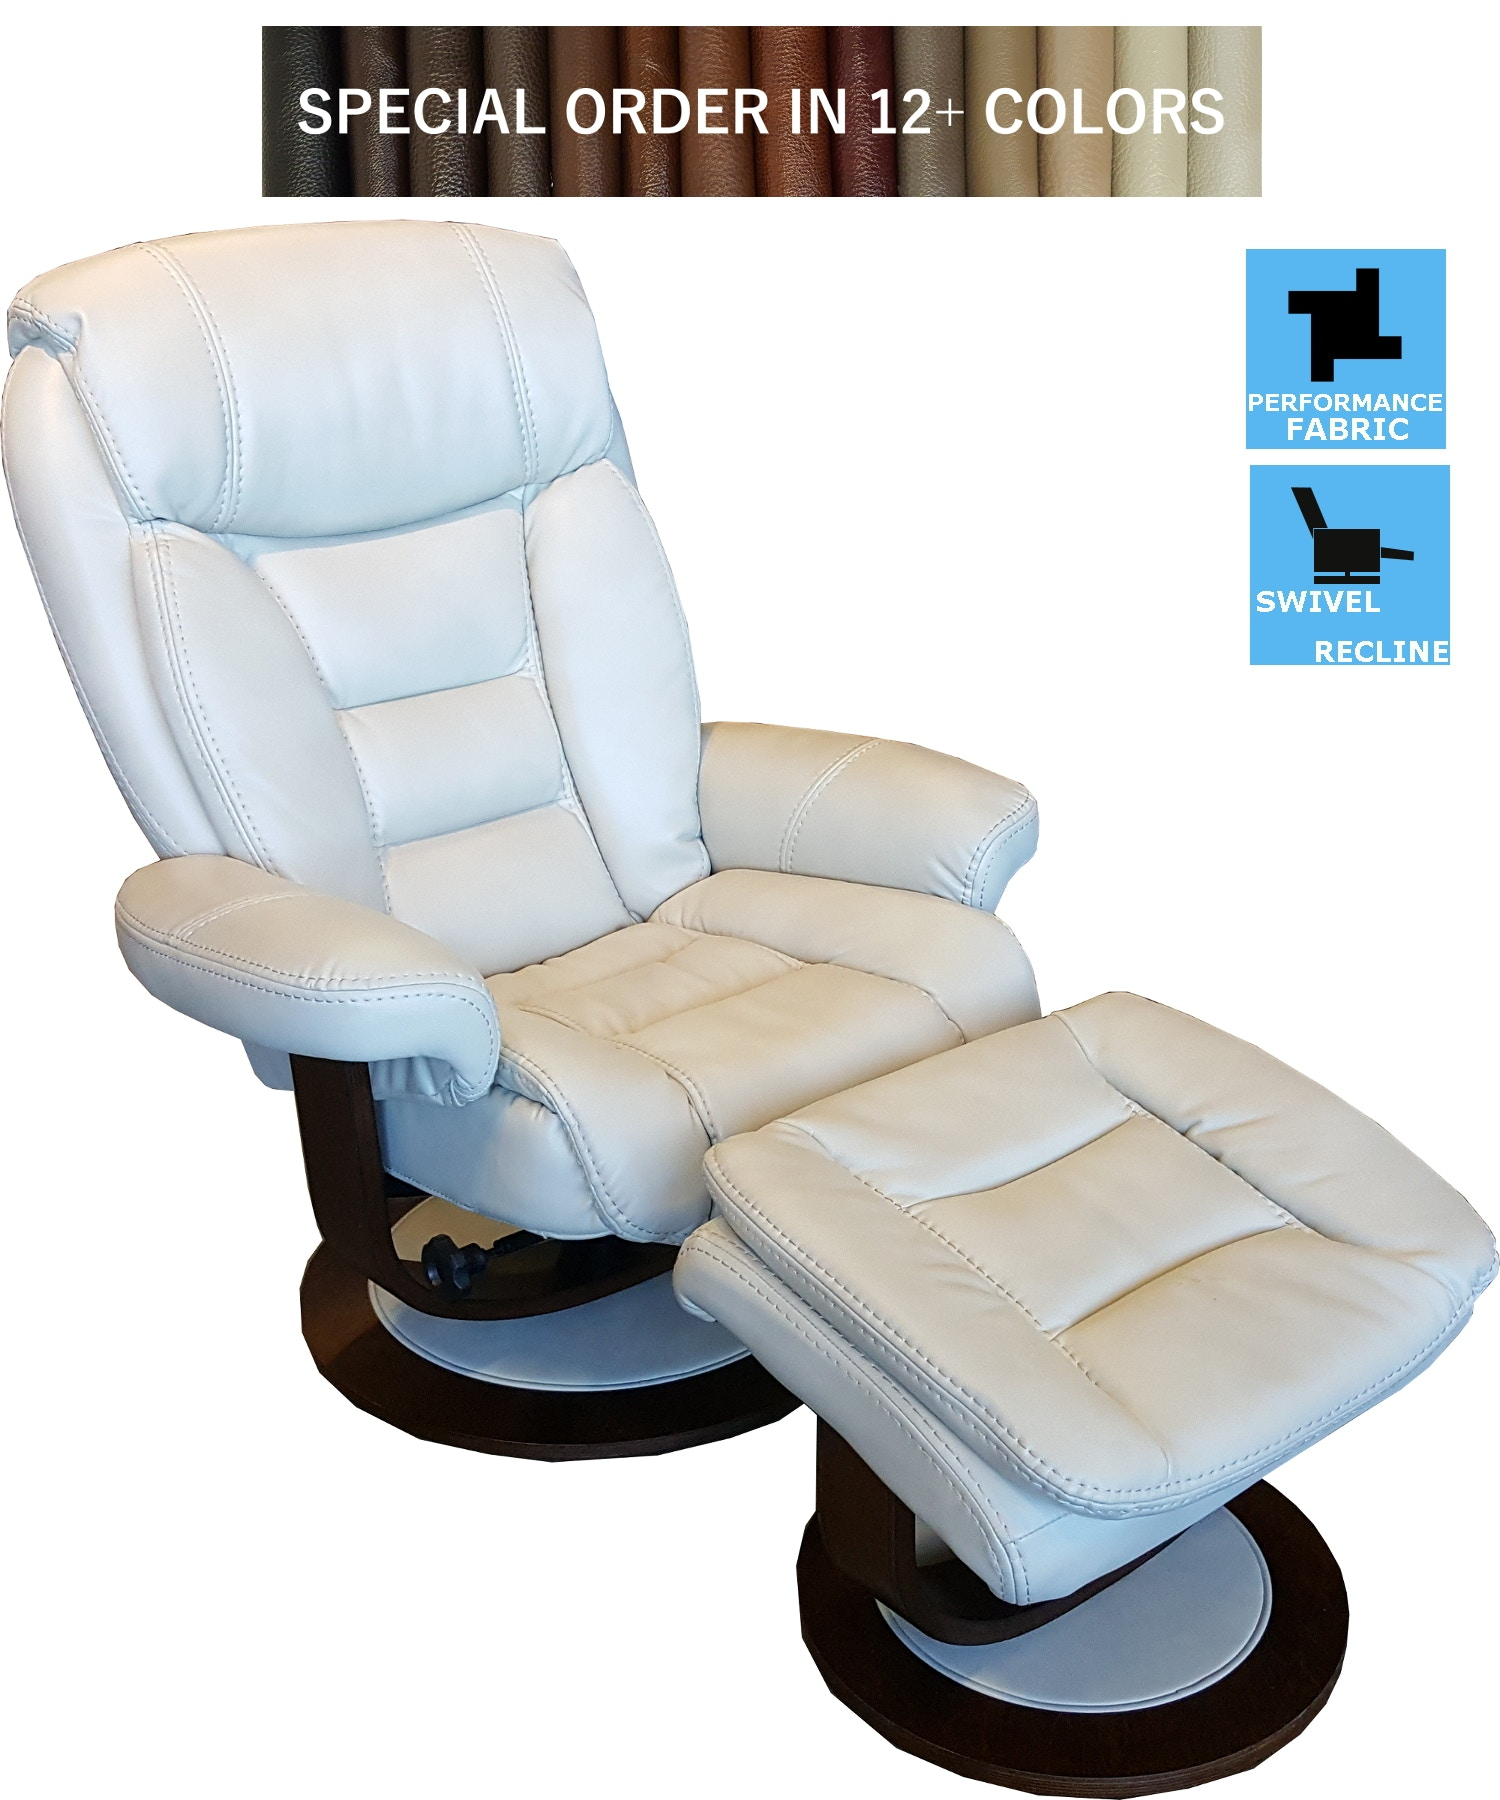 euro recliner chair leather accessories finesse motion living room tandy otto oyster bolero 340760 at furniture interiors